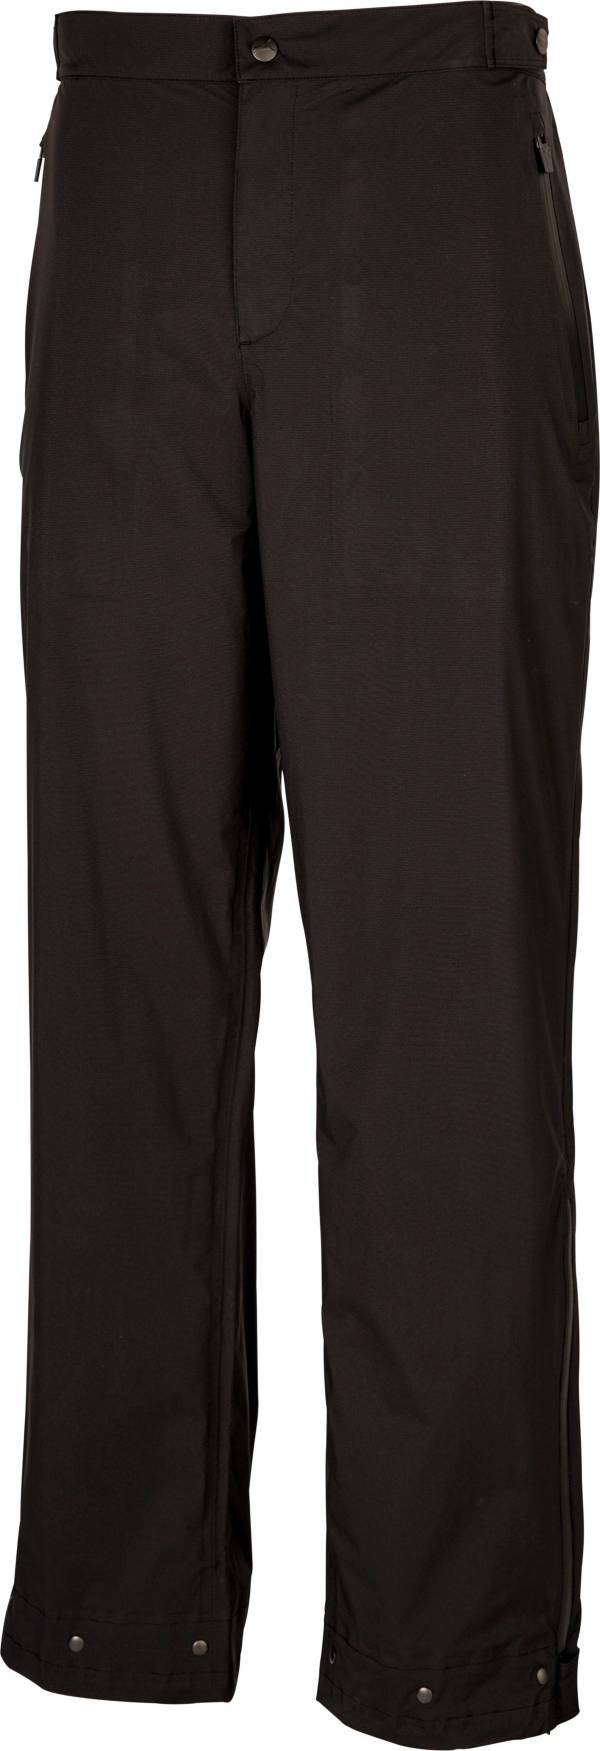 Puma Men's Ultradry Golf Pants product image